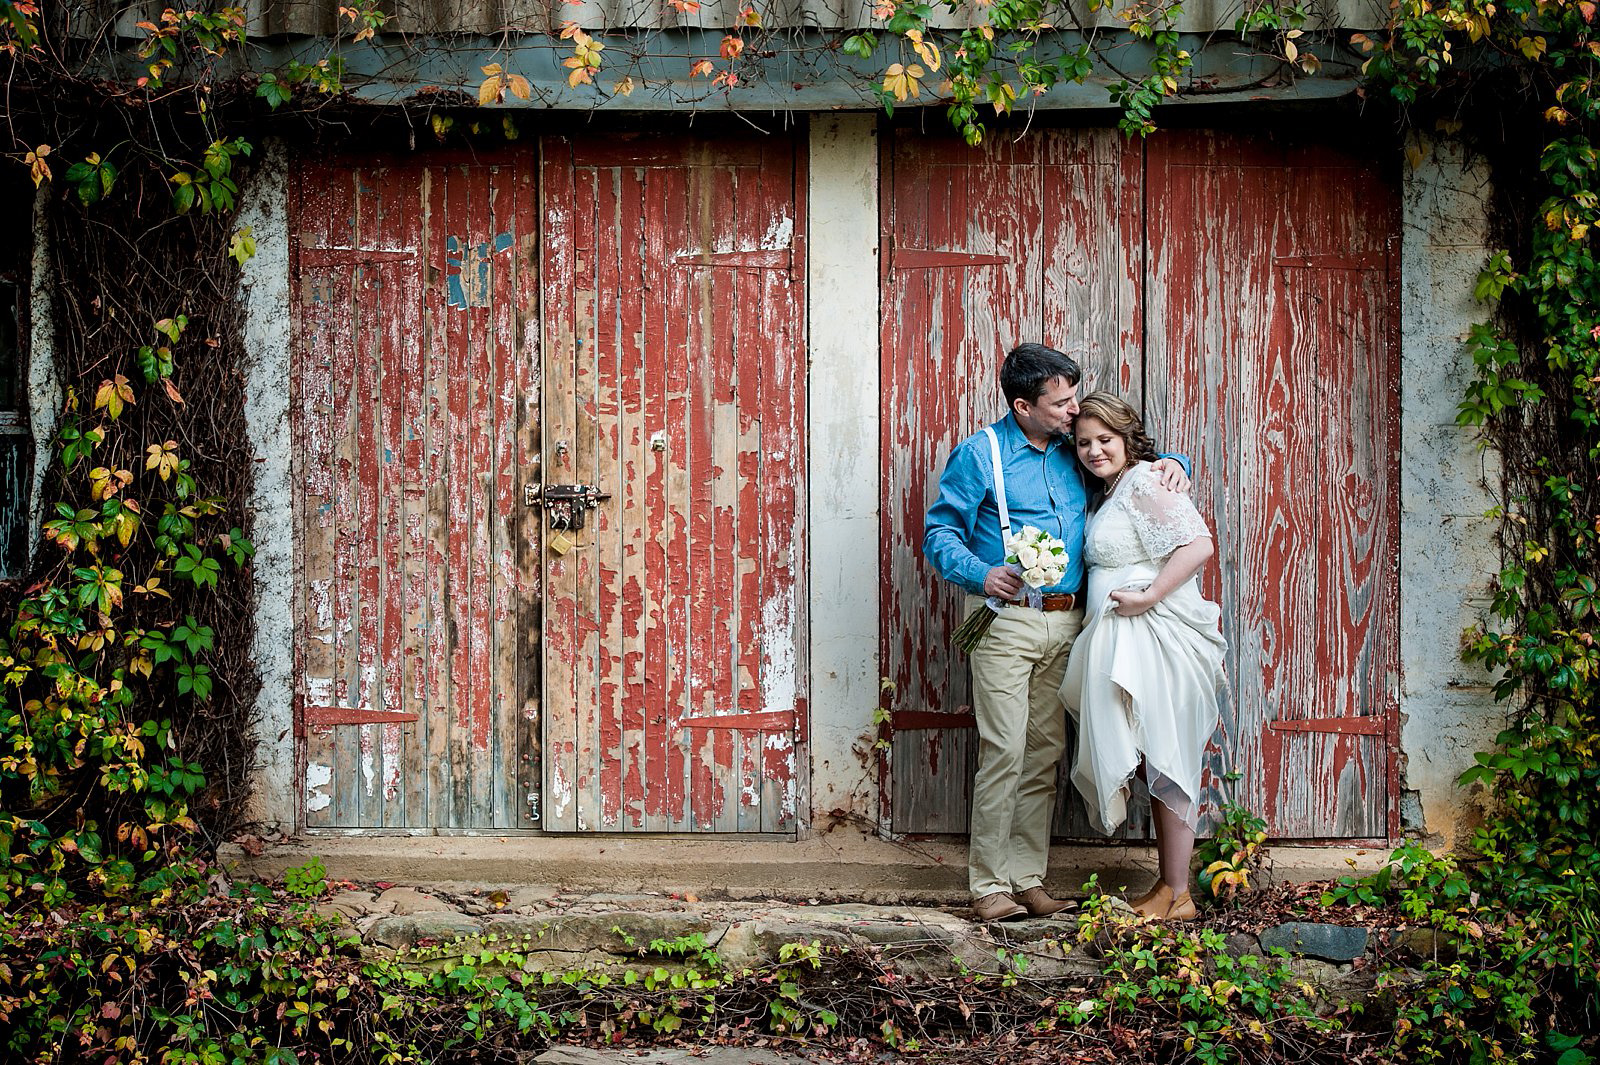 Corrie-Lynn-Farm-Wedding-Top-South-African-Wedding-Photographer-Jacki-Bruniquel-001-6060